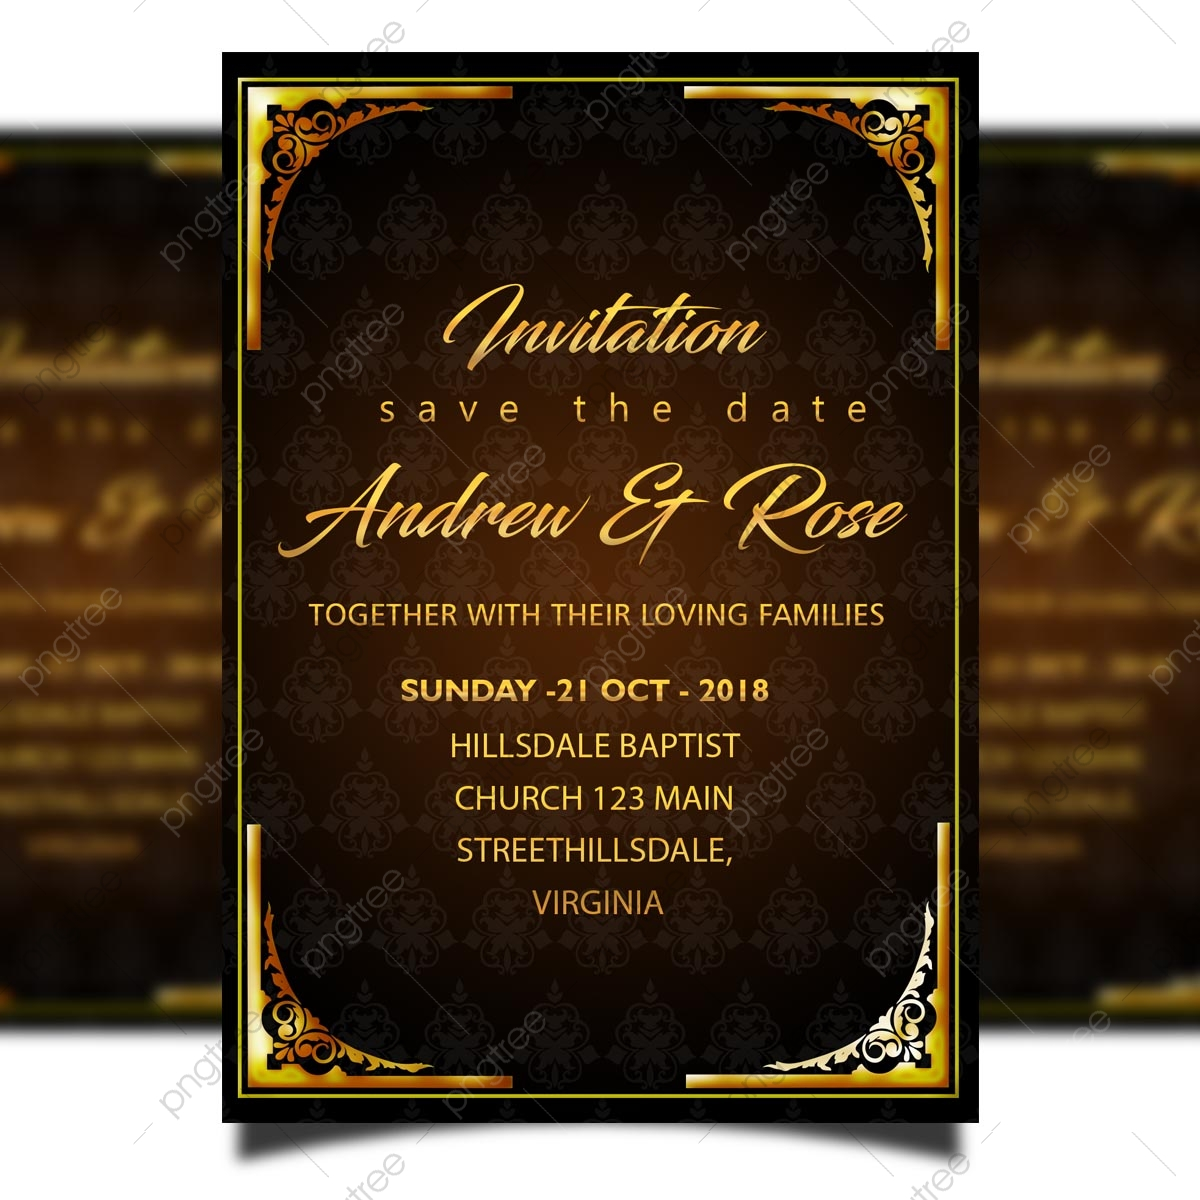 Gold Wedding Invitation Card Template With Gold Frames And Gold Border Template Download On Pngtree